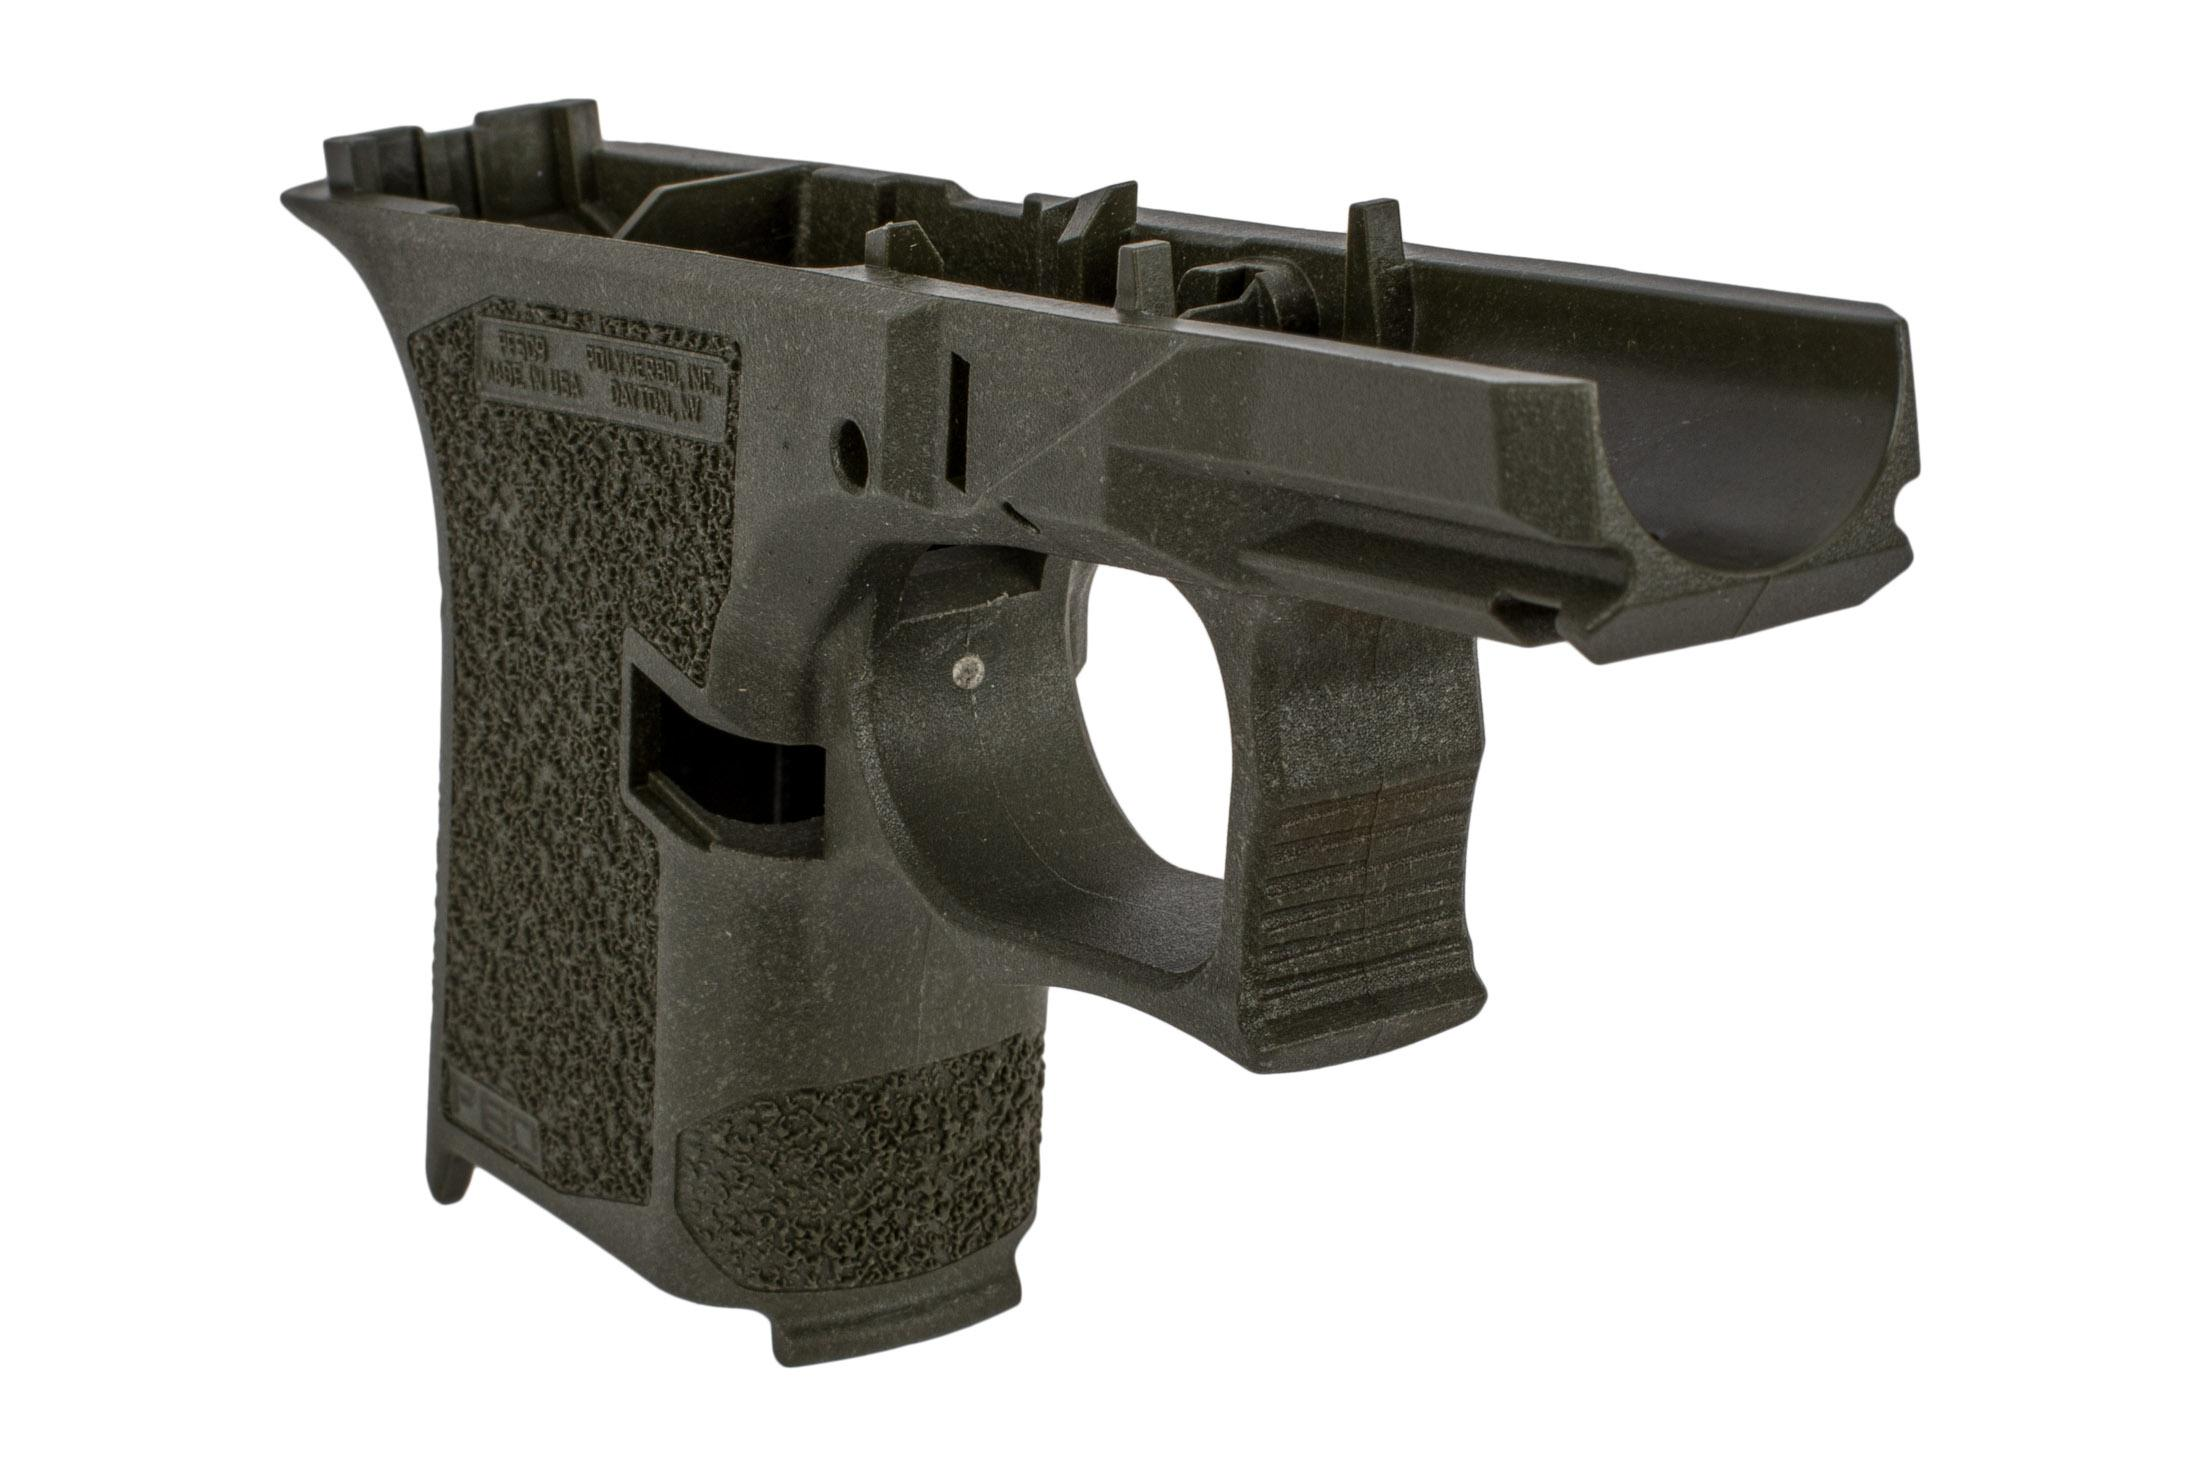 Polymer 80 sub compact frame serialized ODG features an aggressive grip texture